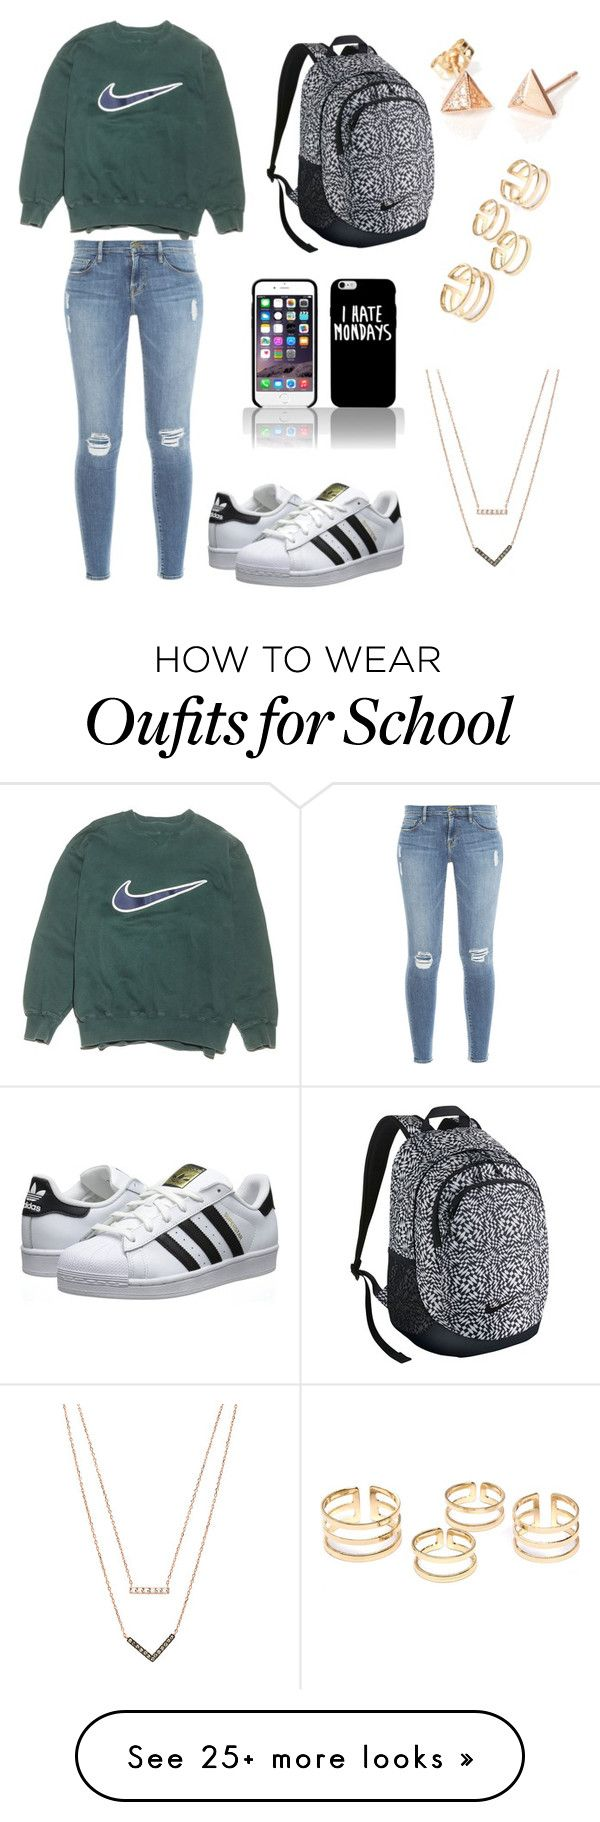 """""""Casual school days"""" by chloebecker on Polyvore featuring NIKE, Frame Denim, adidas Originals and Michael Kors"""